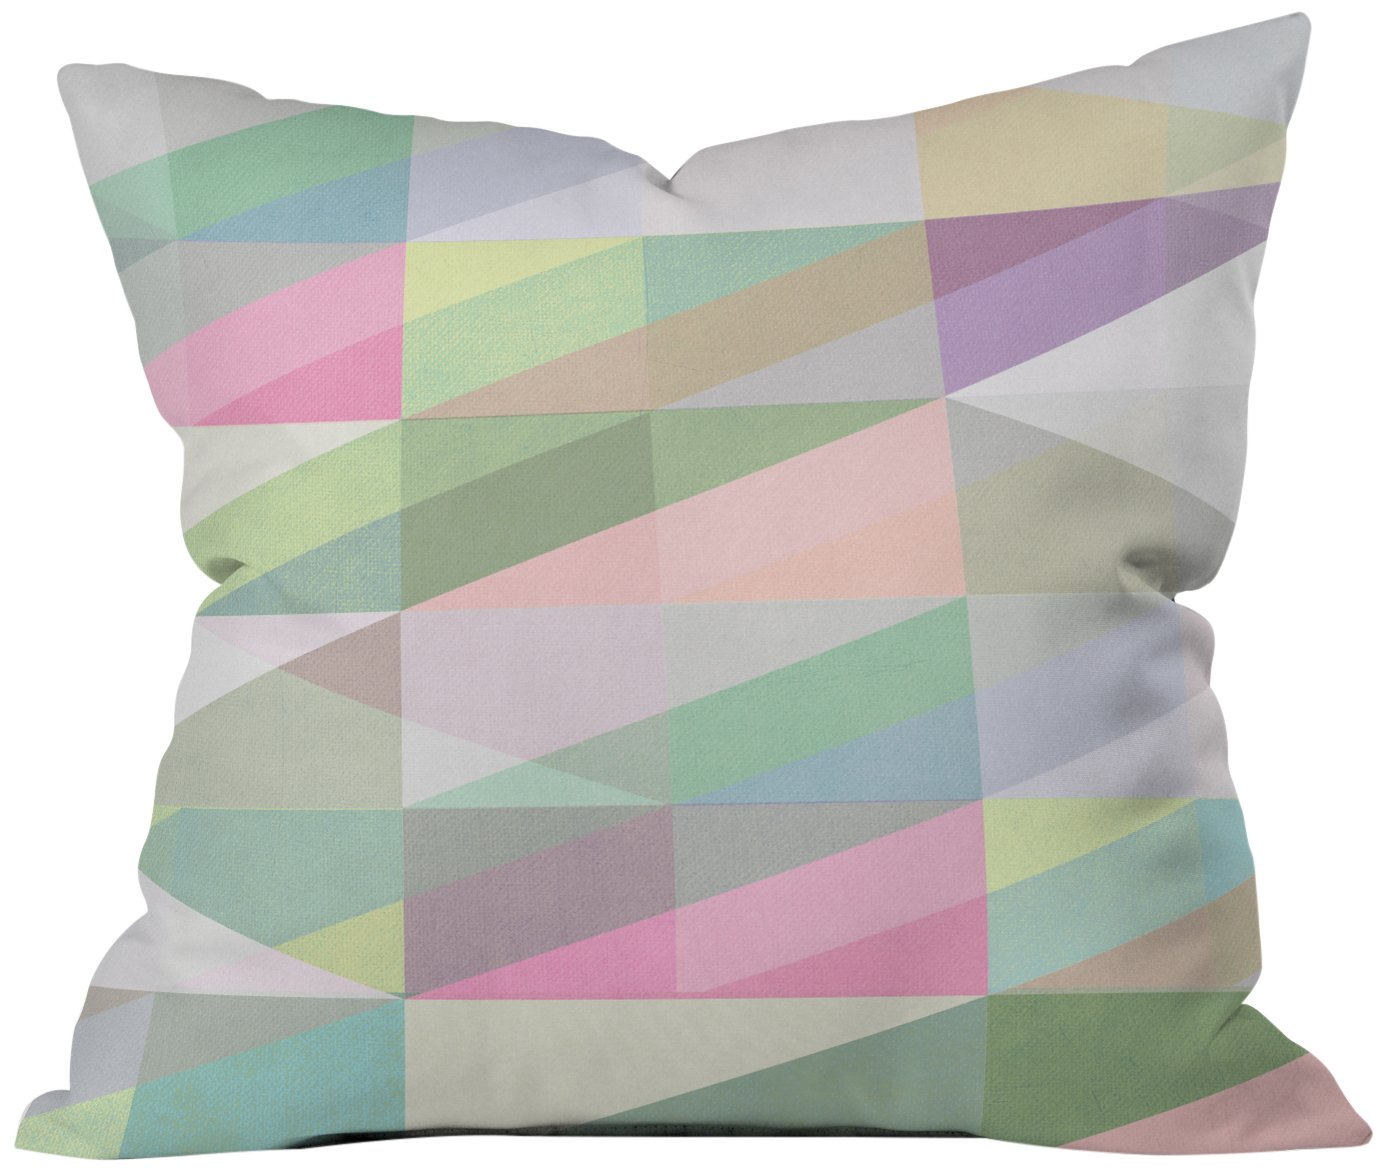 Deny Designs Mareike Boehmer Nordic Combination 31 A Throw Pillow 16 x 16